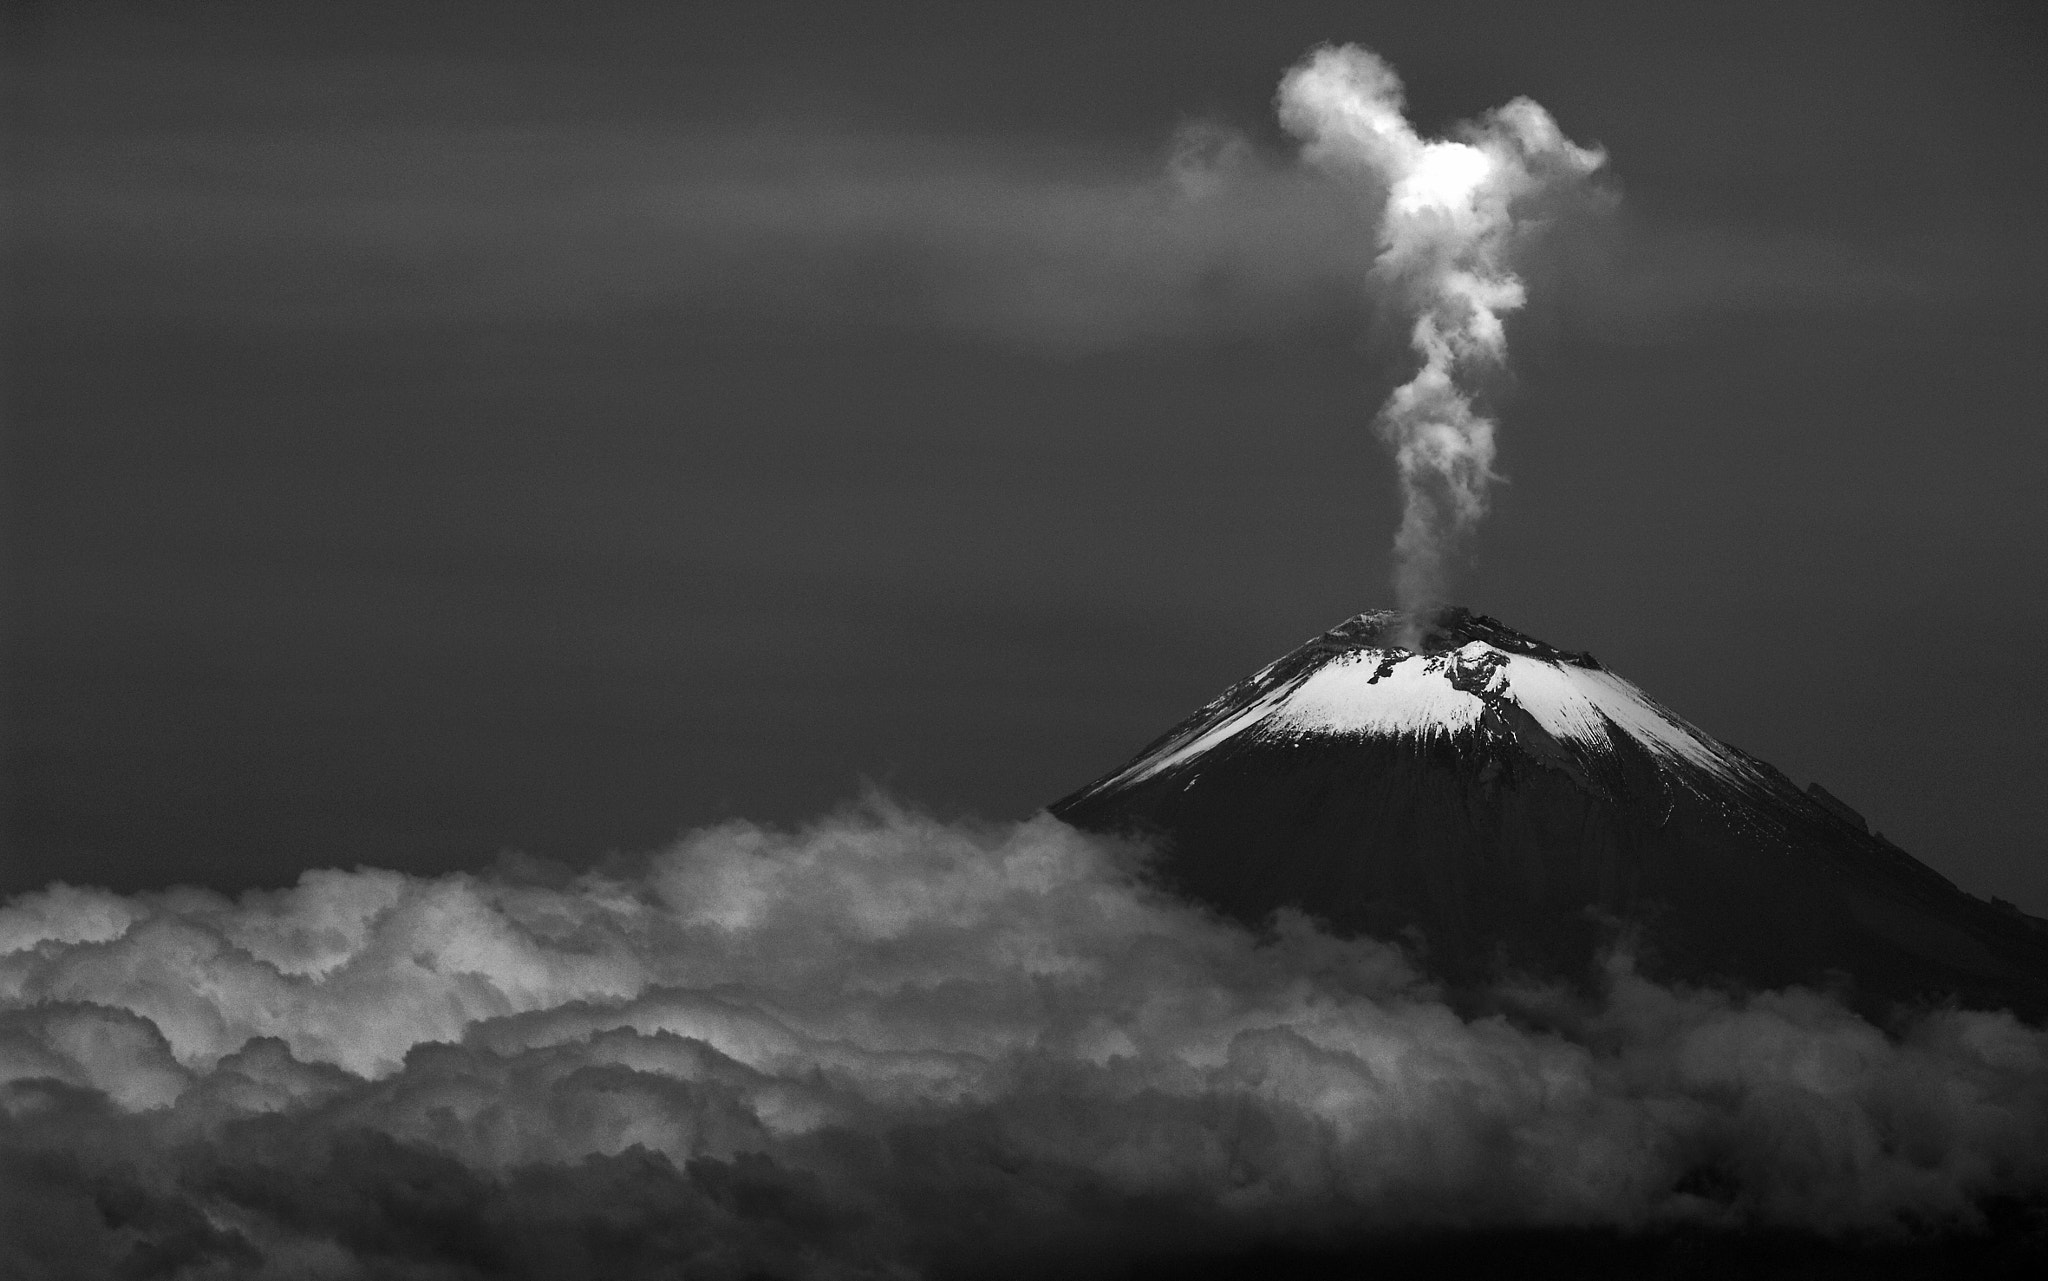 Photograph Smoking over the clouds by Cristobal Garciaferro Rubio on 500px